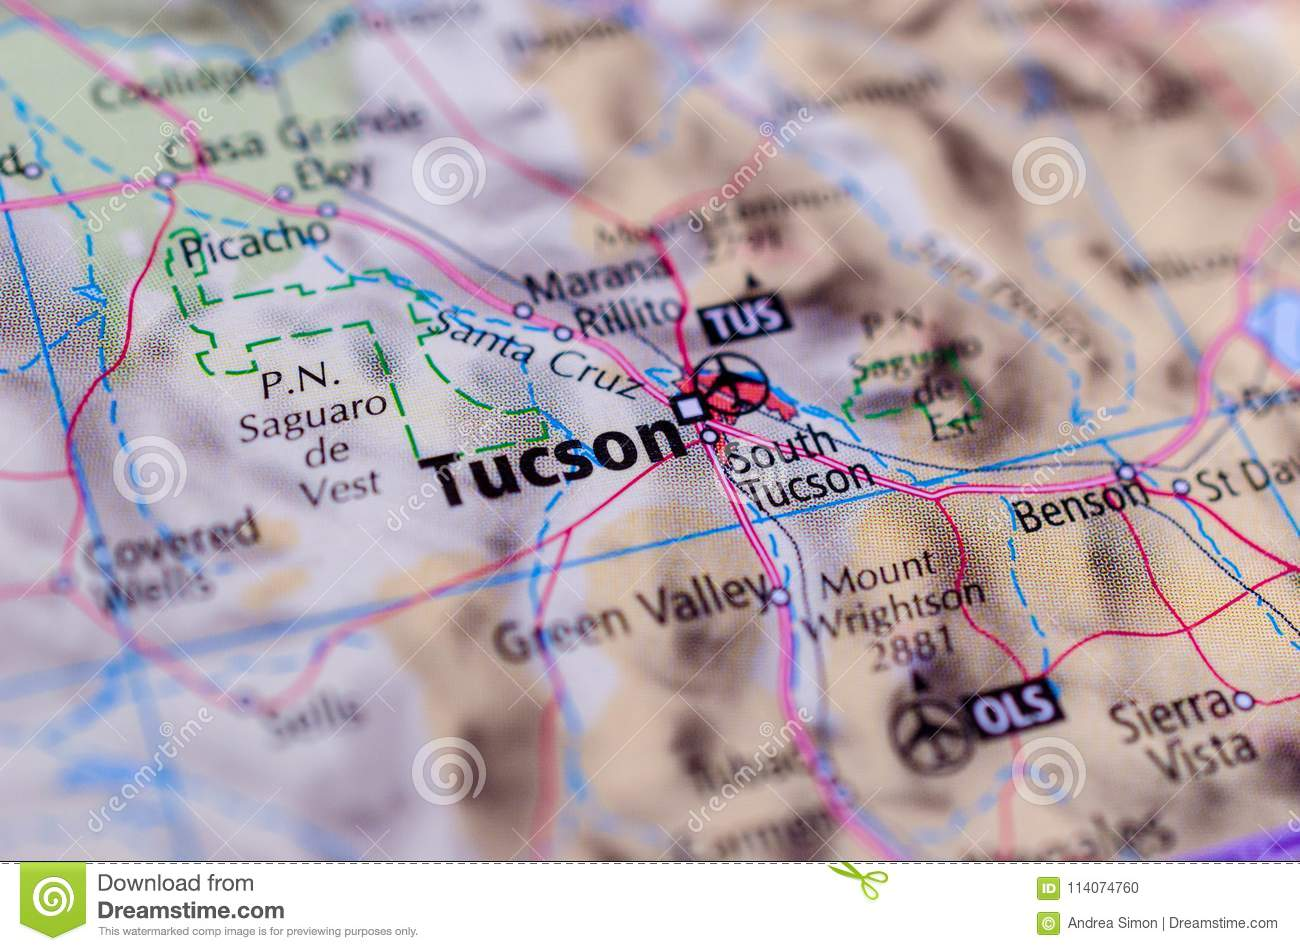 Tucson, Arizona on map